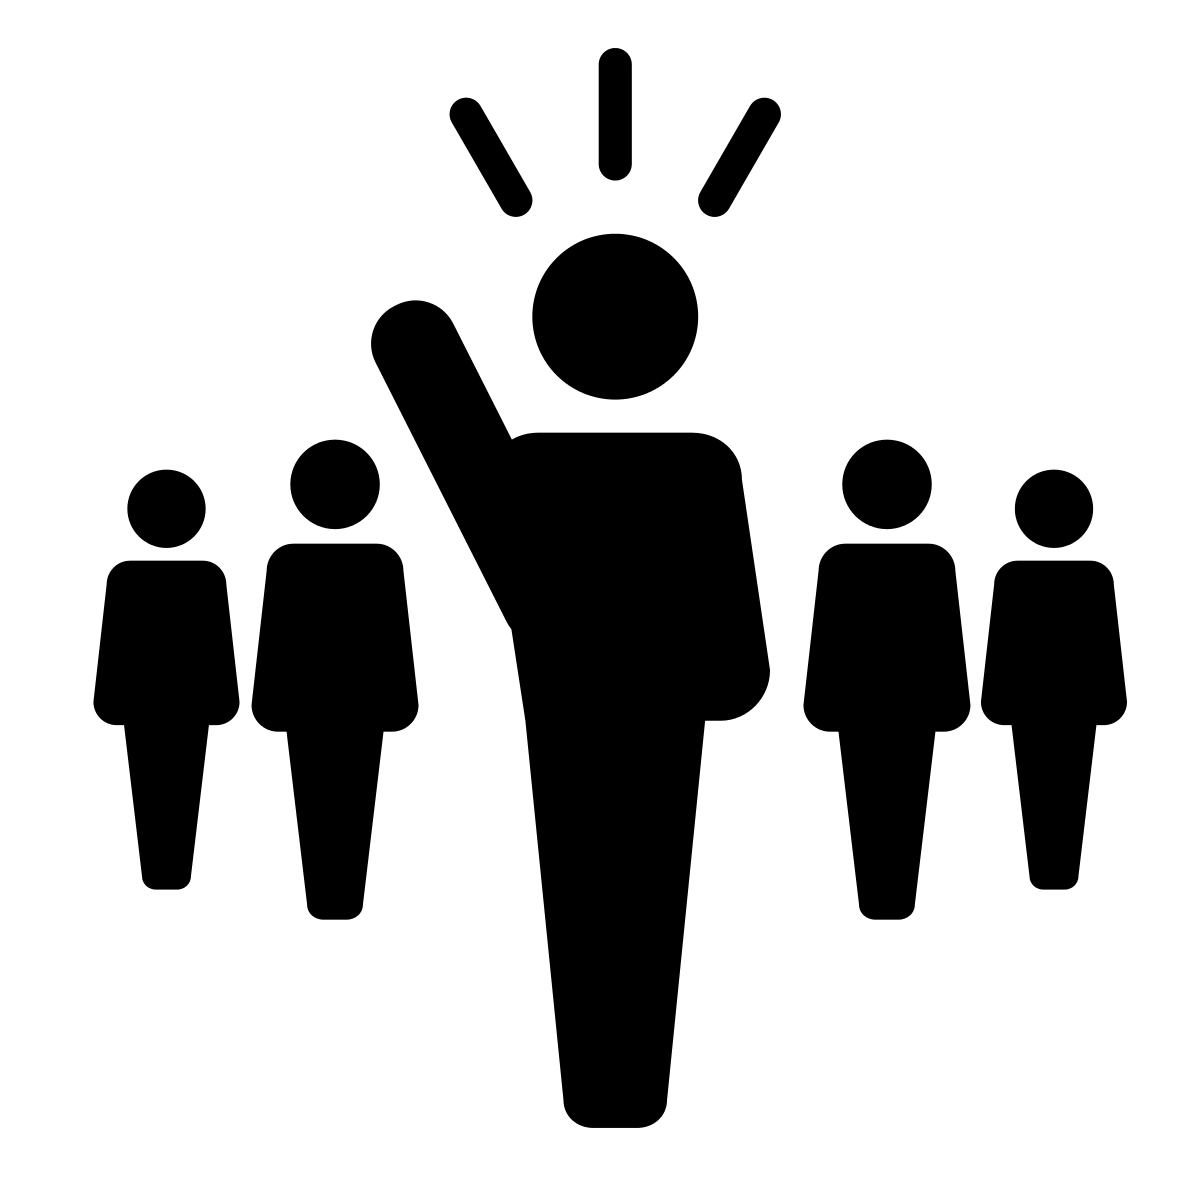 image transparent download Leader clipart black and white. Leadership icon png .